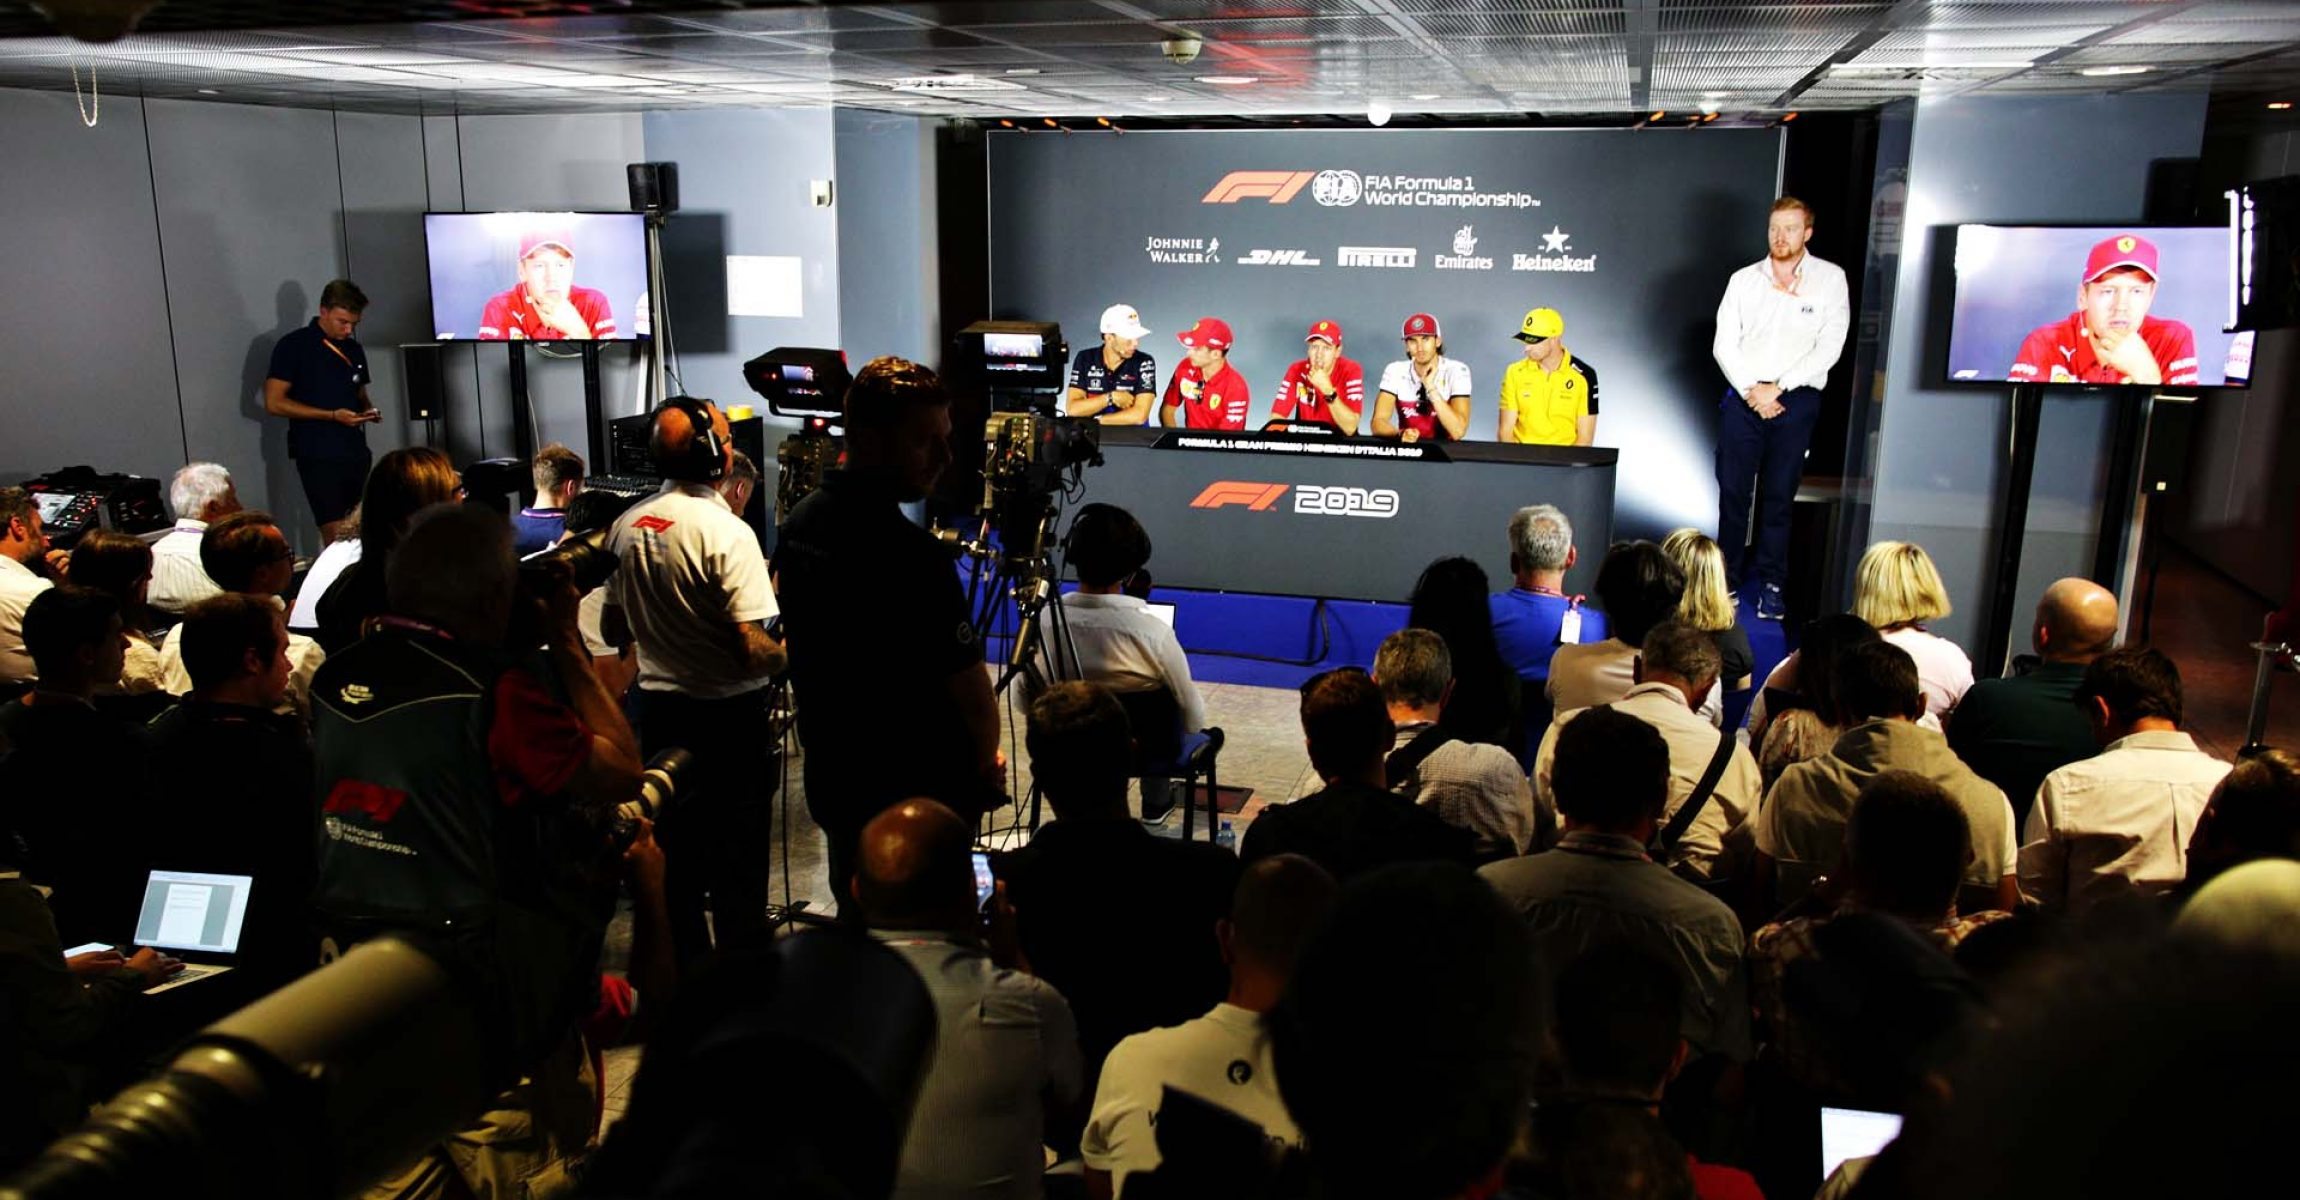 MONZA, ITALY - SEPTEMBER 05: A general view of the Drivers Press Conference with Pierre Gasly of France and Scuderia Toro Rosso, Charles Leclerc of Monaco and Ferrari, Sebastian Vettel of Germany and Ferrari, Antonio Giovinazzi of Italy and Alfa Romeo Racing and Nico Hulkenberg of Germany and Renault Sport F1 during previews ahead of the F1 Grand Prix of Italy at Autodromo di Monza on September 05, 2019 in Monza, Italy. (Photo by Peter Fox/Getty Images) // Getty Images / Red Bull Content Pool // AP-21FU5RUB12111 // Usage for editorial use only //